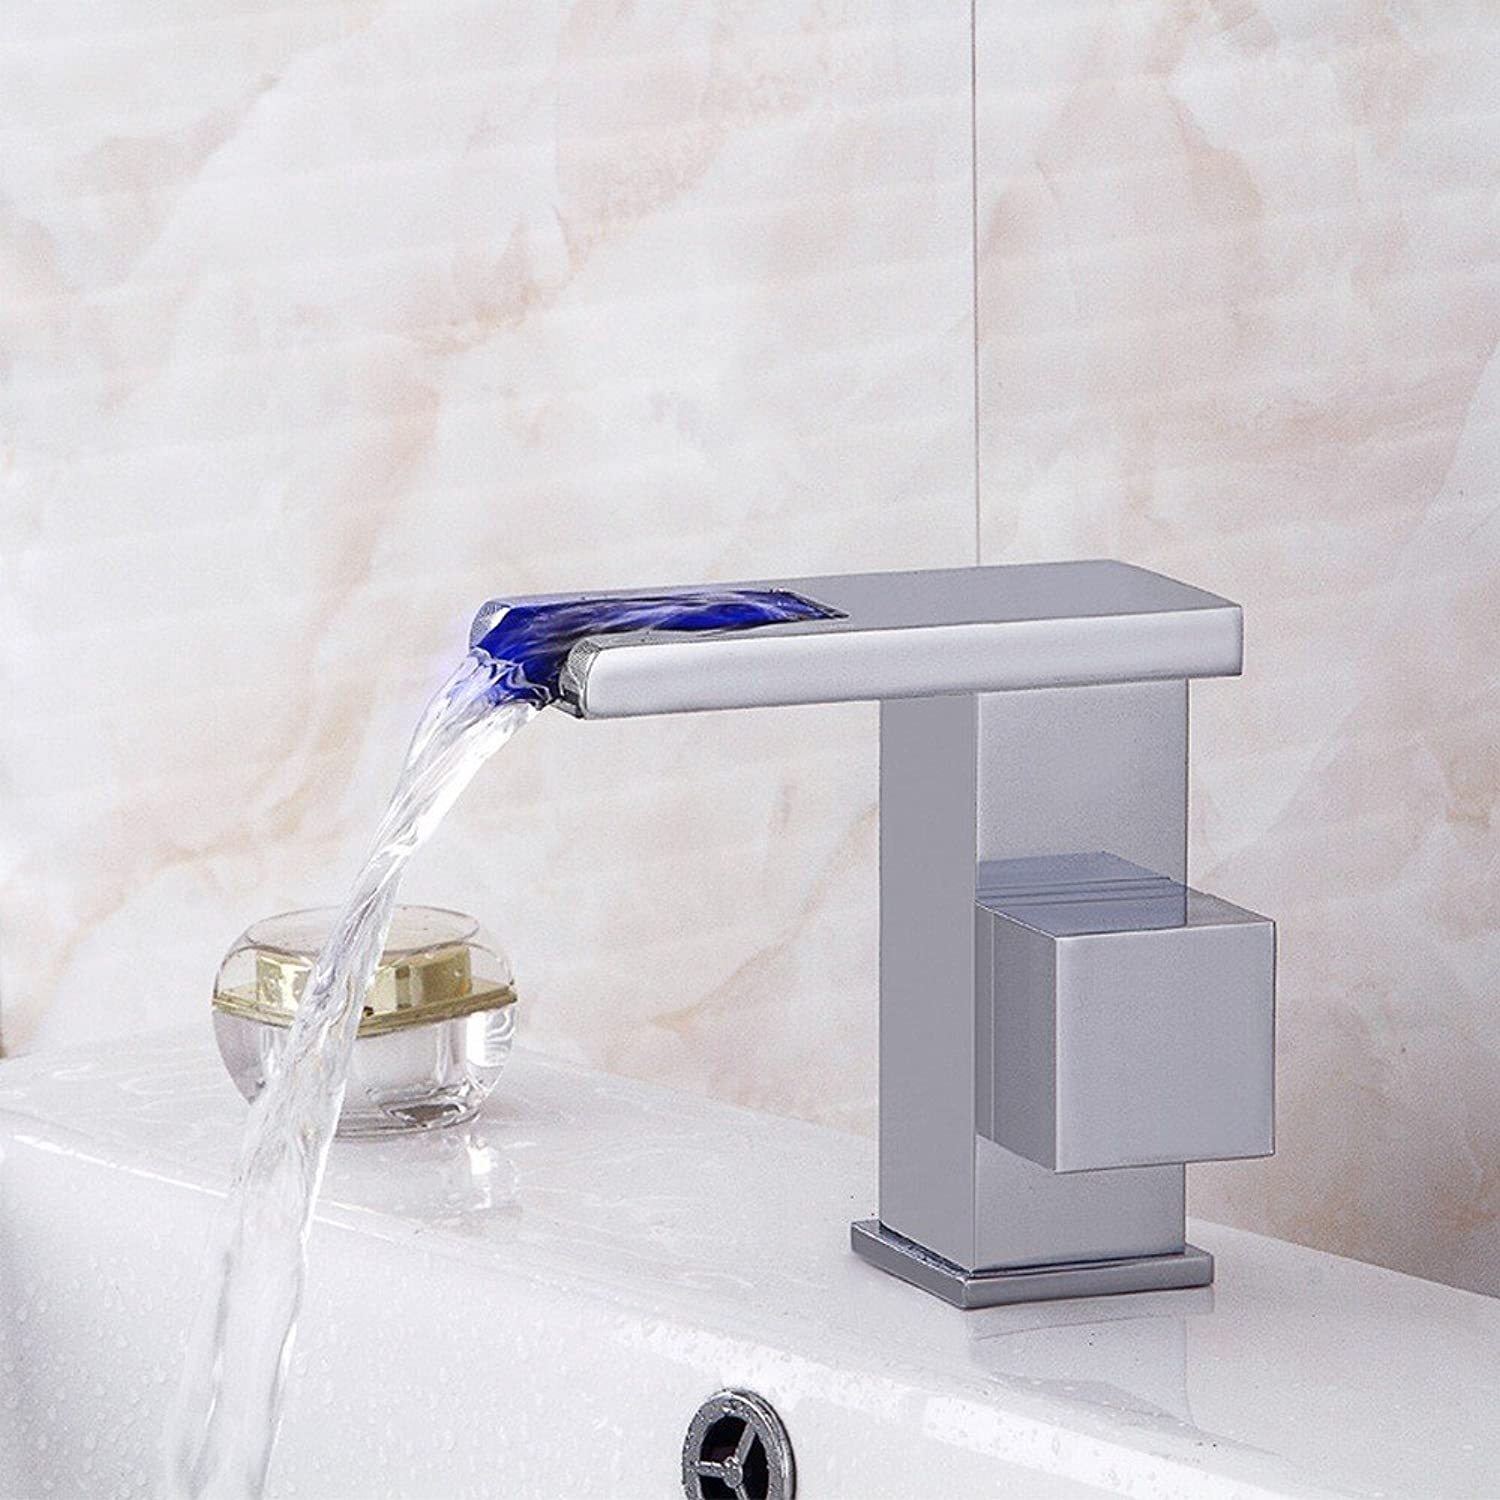 Rmckuva Bathroom Sink Taps Brass Modern Single Handle Faucet Bathroom Faucet Led Hydro Power Strap Waterfall Effect Wash Basin Sink Tap Chromium Coating Blender